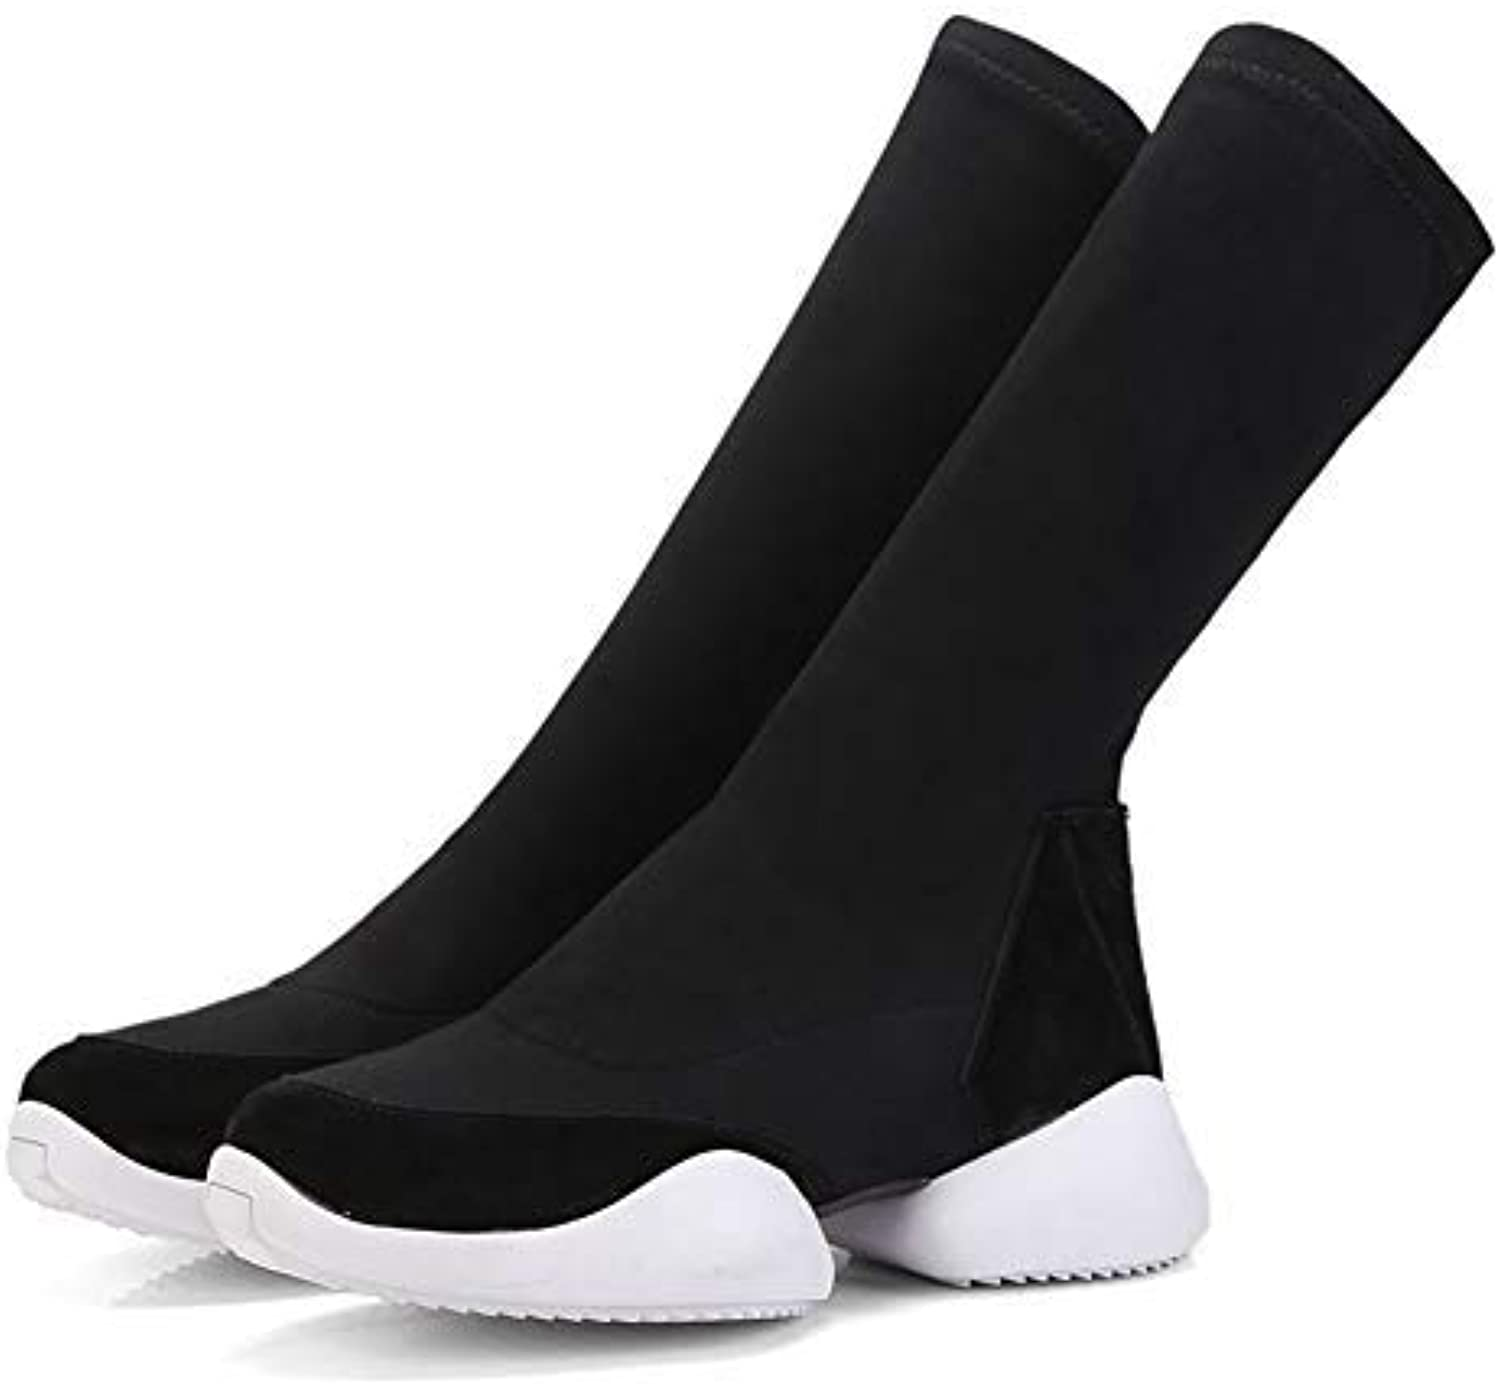 Women Knee-high Riding shoes Winter Stretch Cloth Warm Woman Soft Surface High Heel Boots Platform Ladies Ankle Boots for Woman Easy to Match for Girls No Grinding Feet Black 8 M US Boots